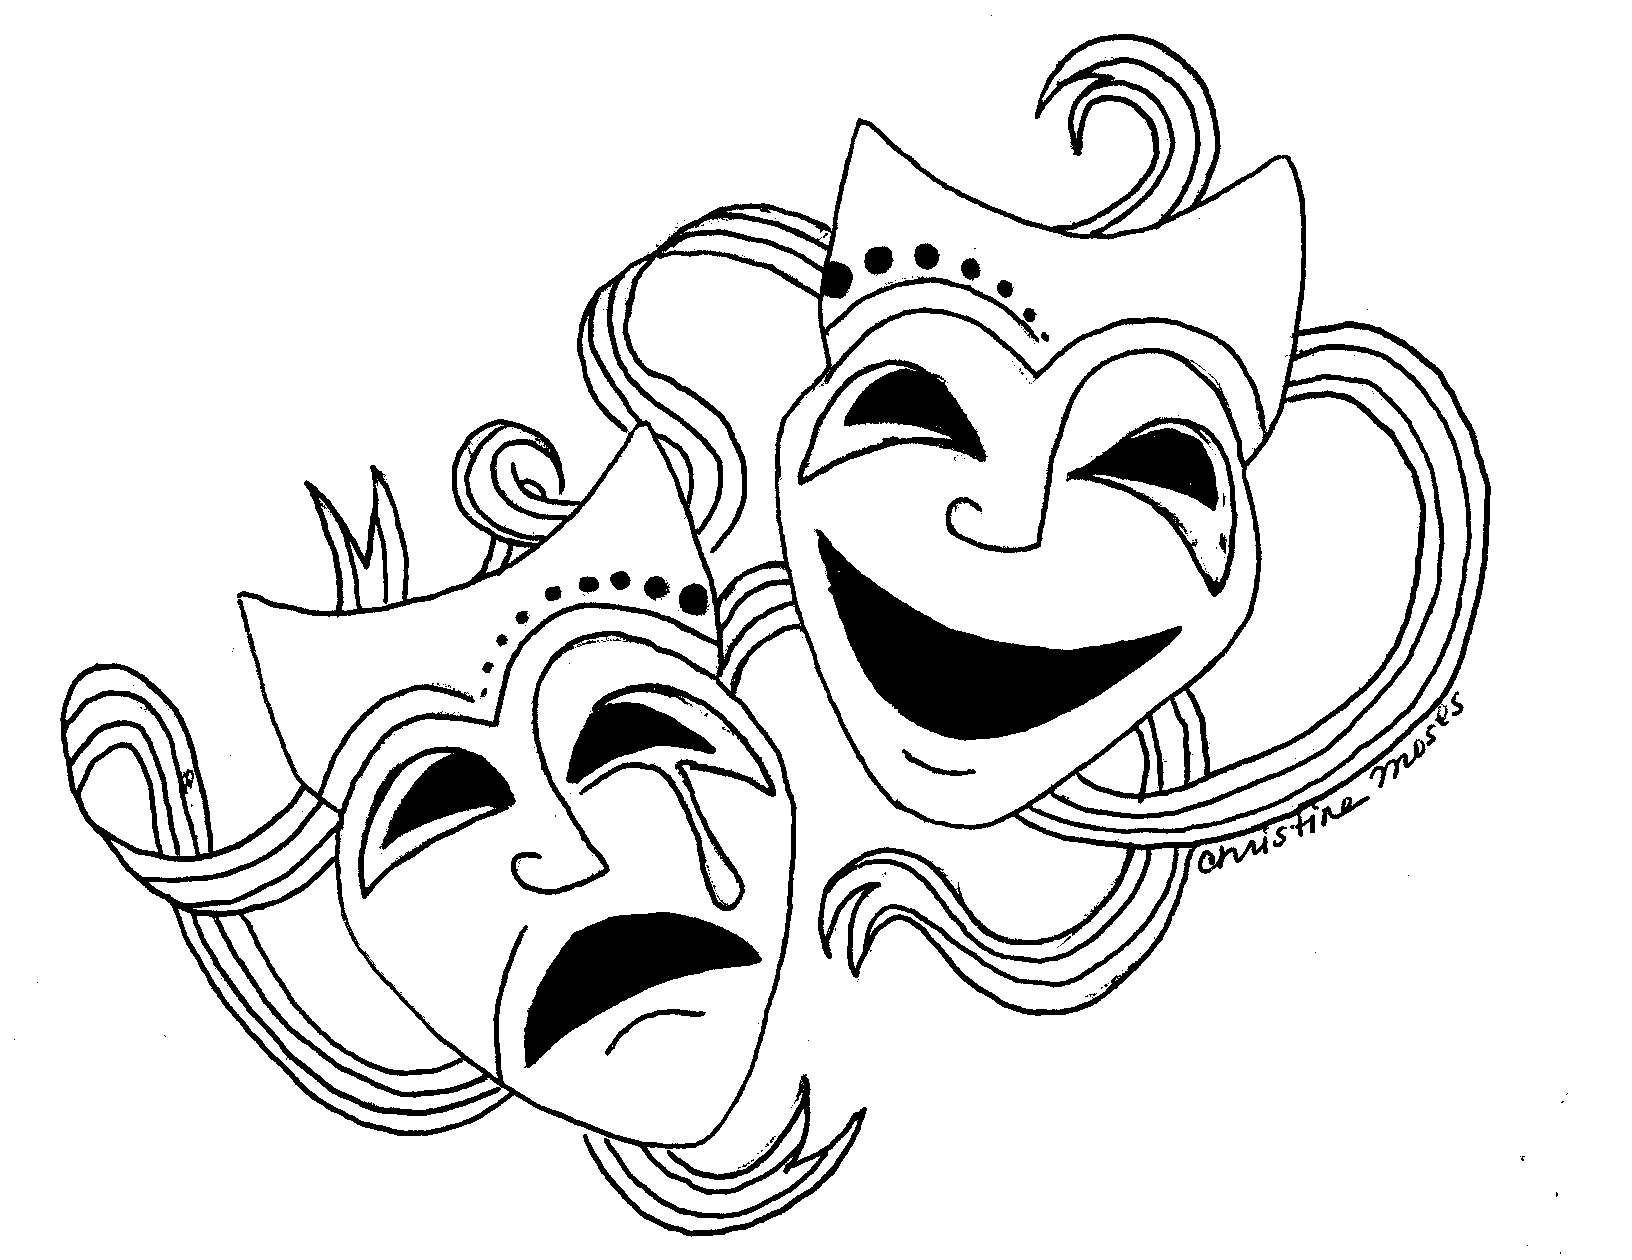 Theatre clipart mask drawing Masks Clipart Art Image Clip